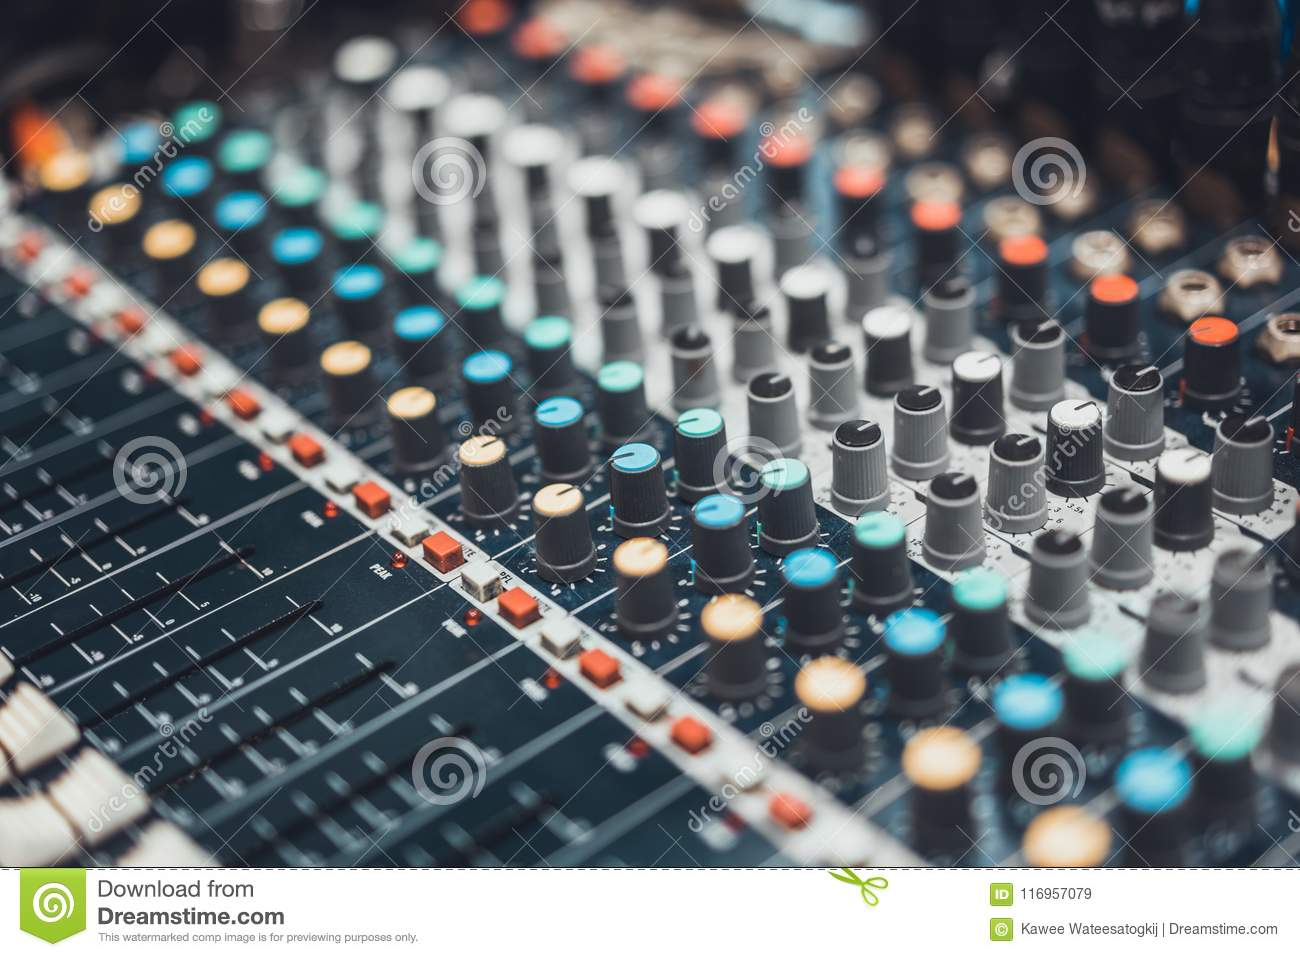 Audio mixer control panel or sound editor, cinematic tone. Digital music technology, concert event, DJ equipment concept